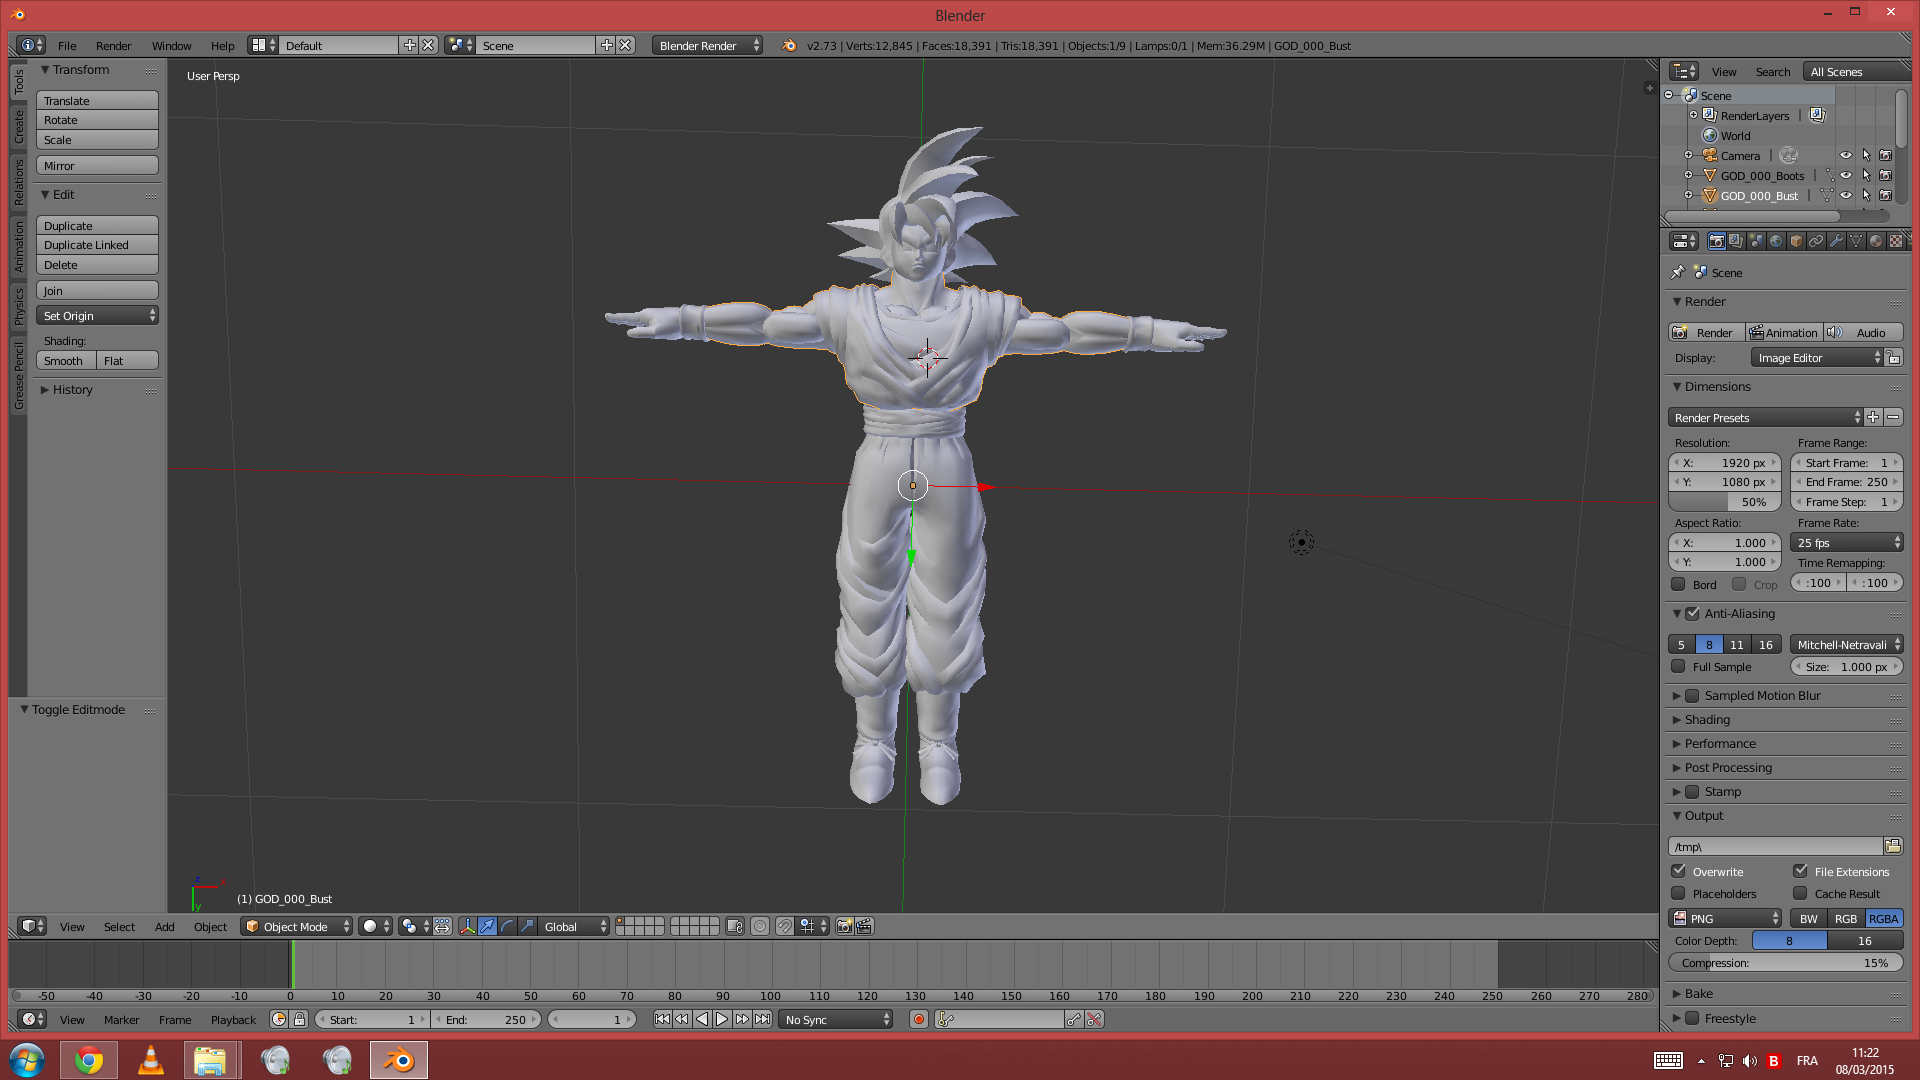 Blender Character Modeling 4 Of 10 : Dragon ball xenoverse mods